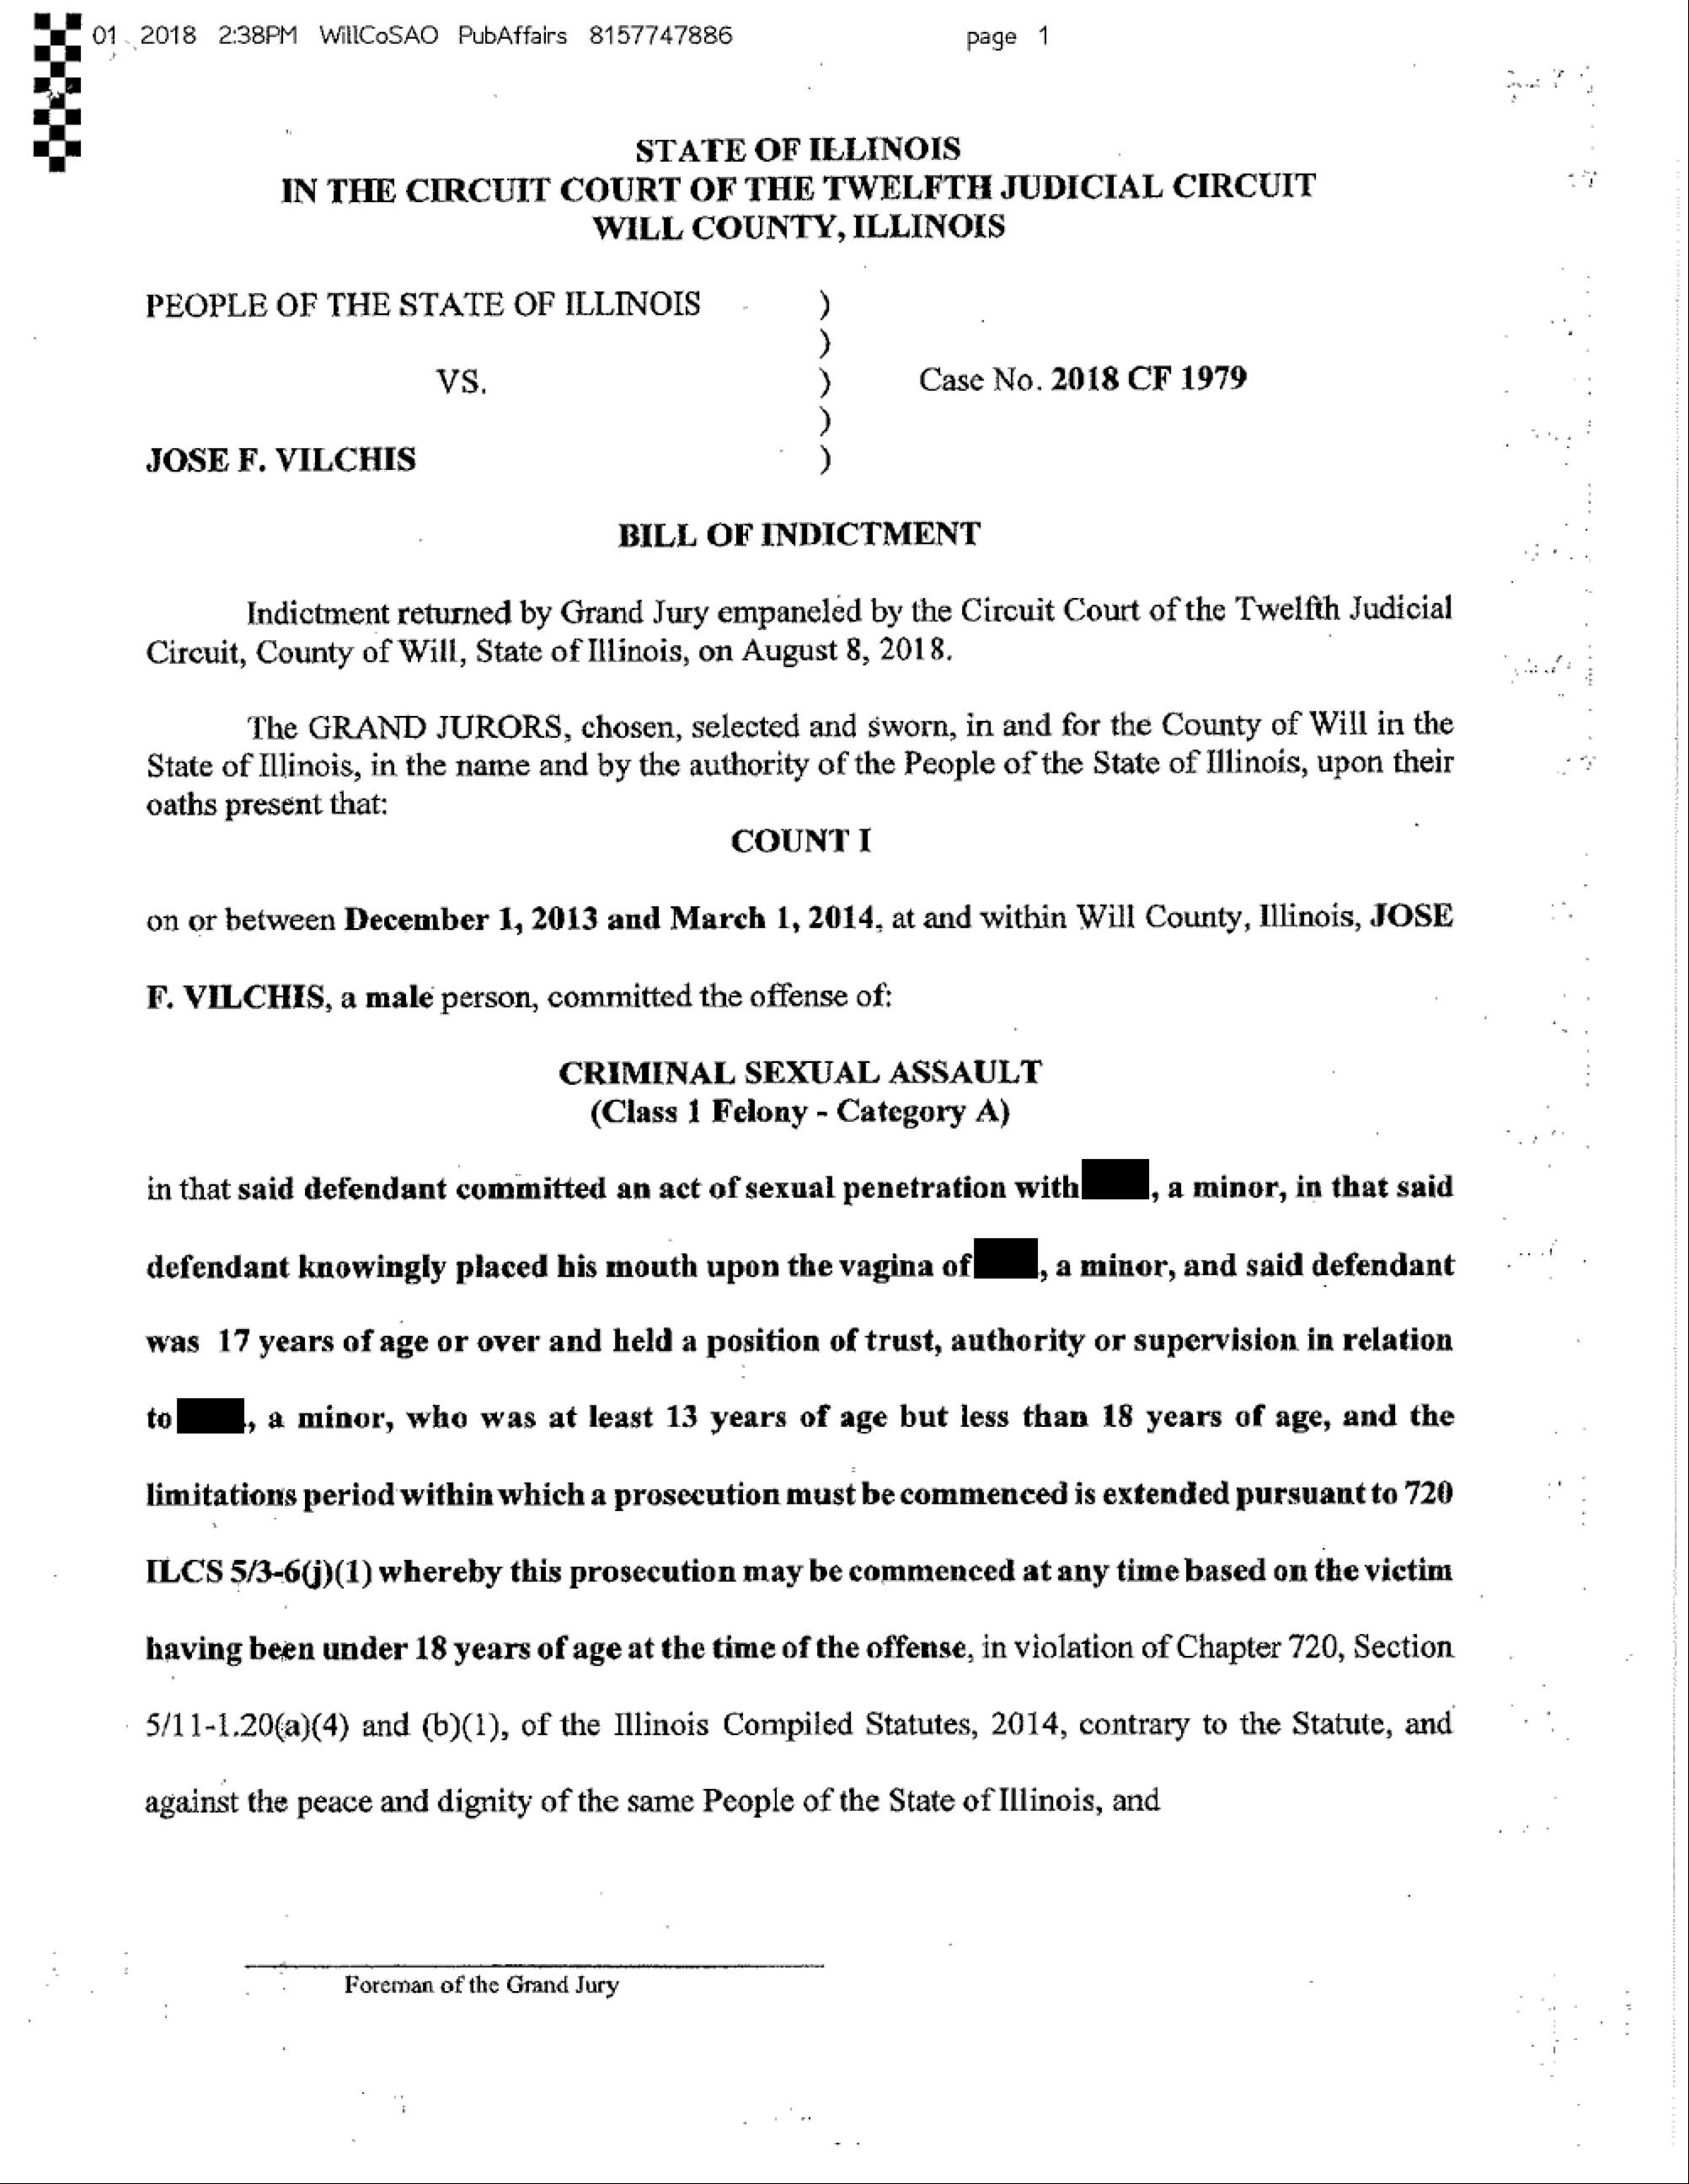 Document: Read the indictment against Jose Vilchis